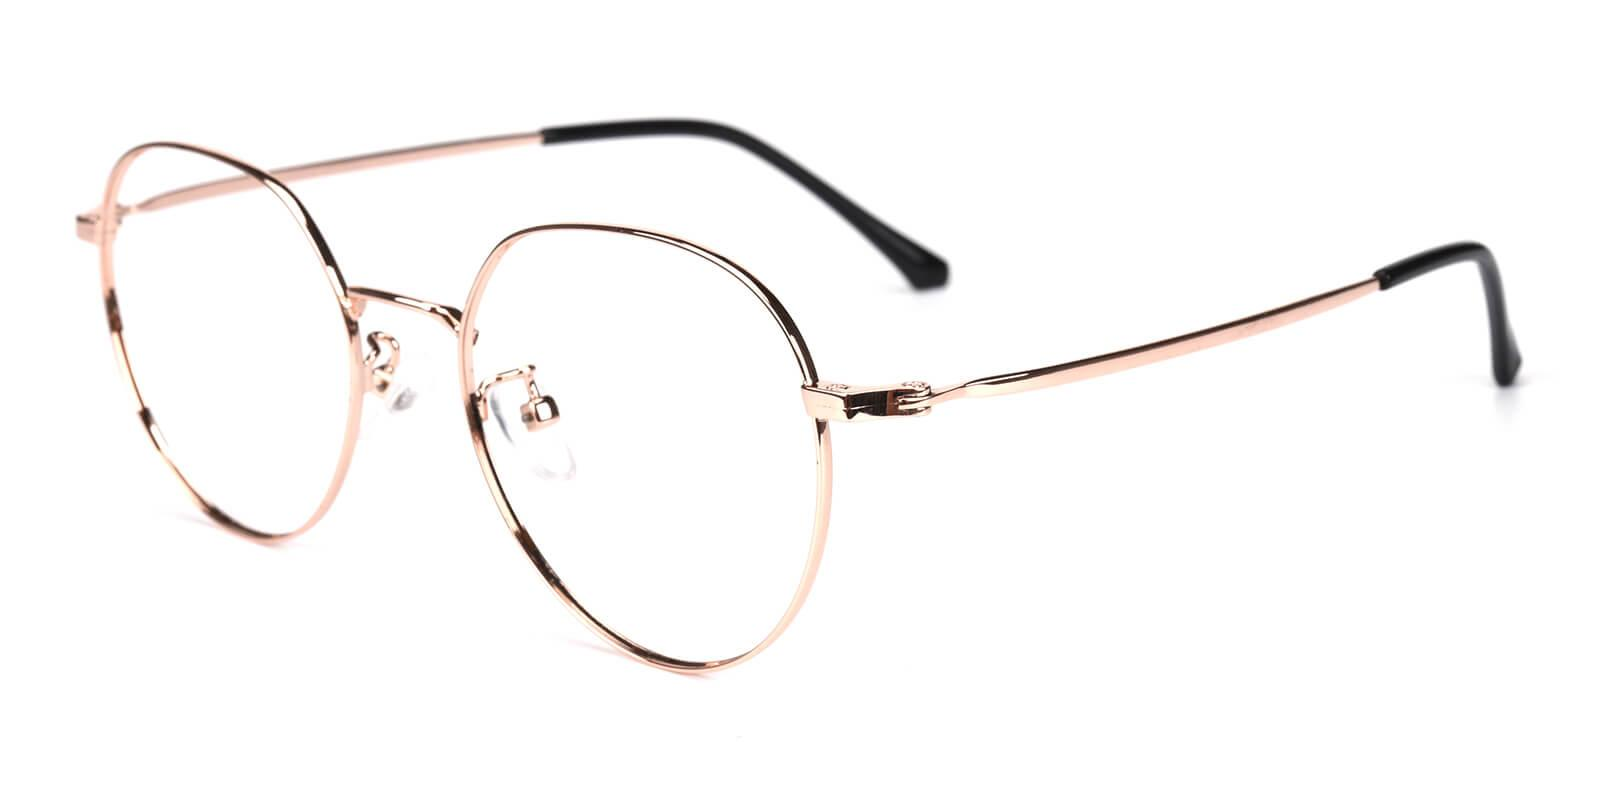 Amorous-Gold-Round-Metal-Eyeglasses-additional1